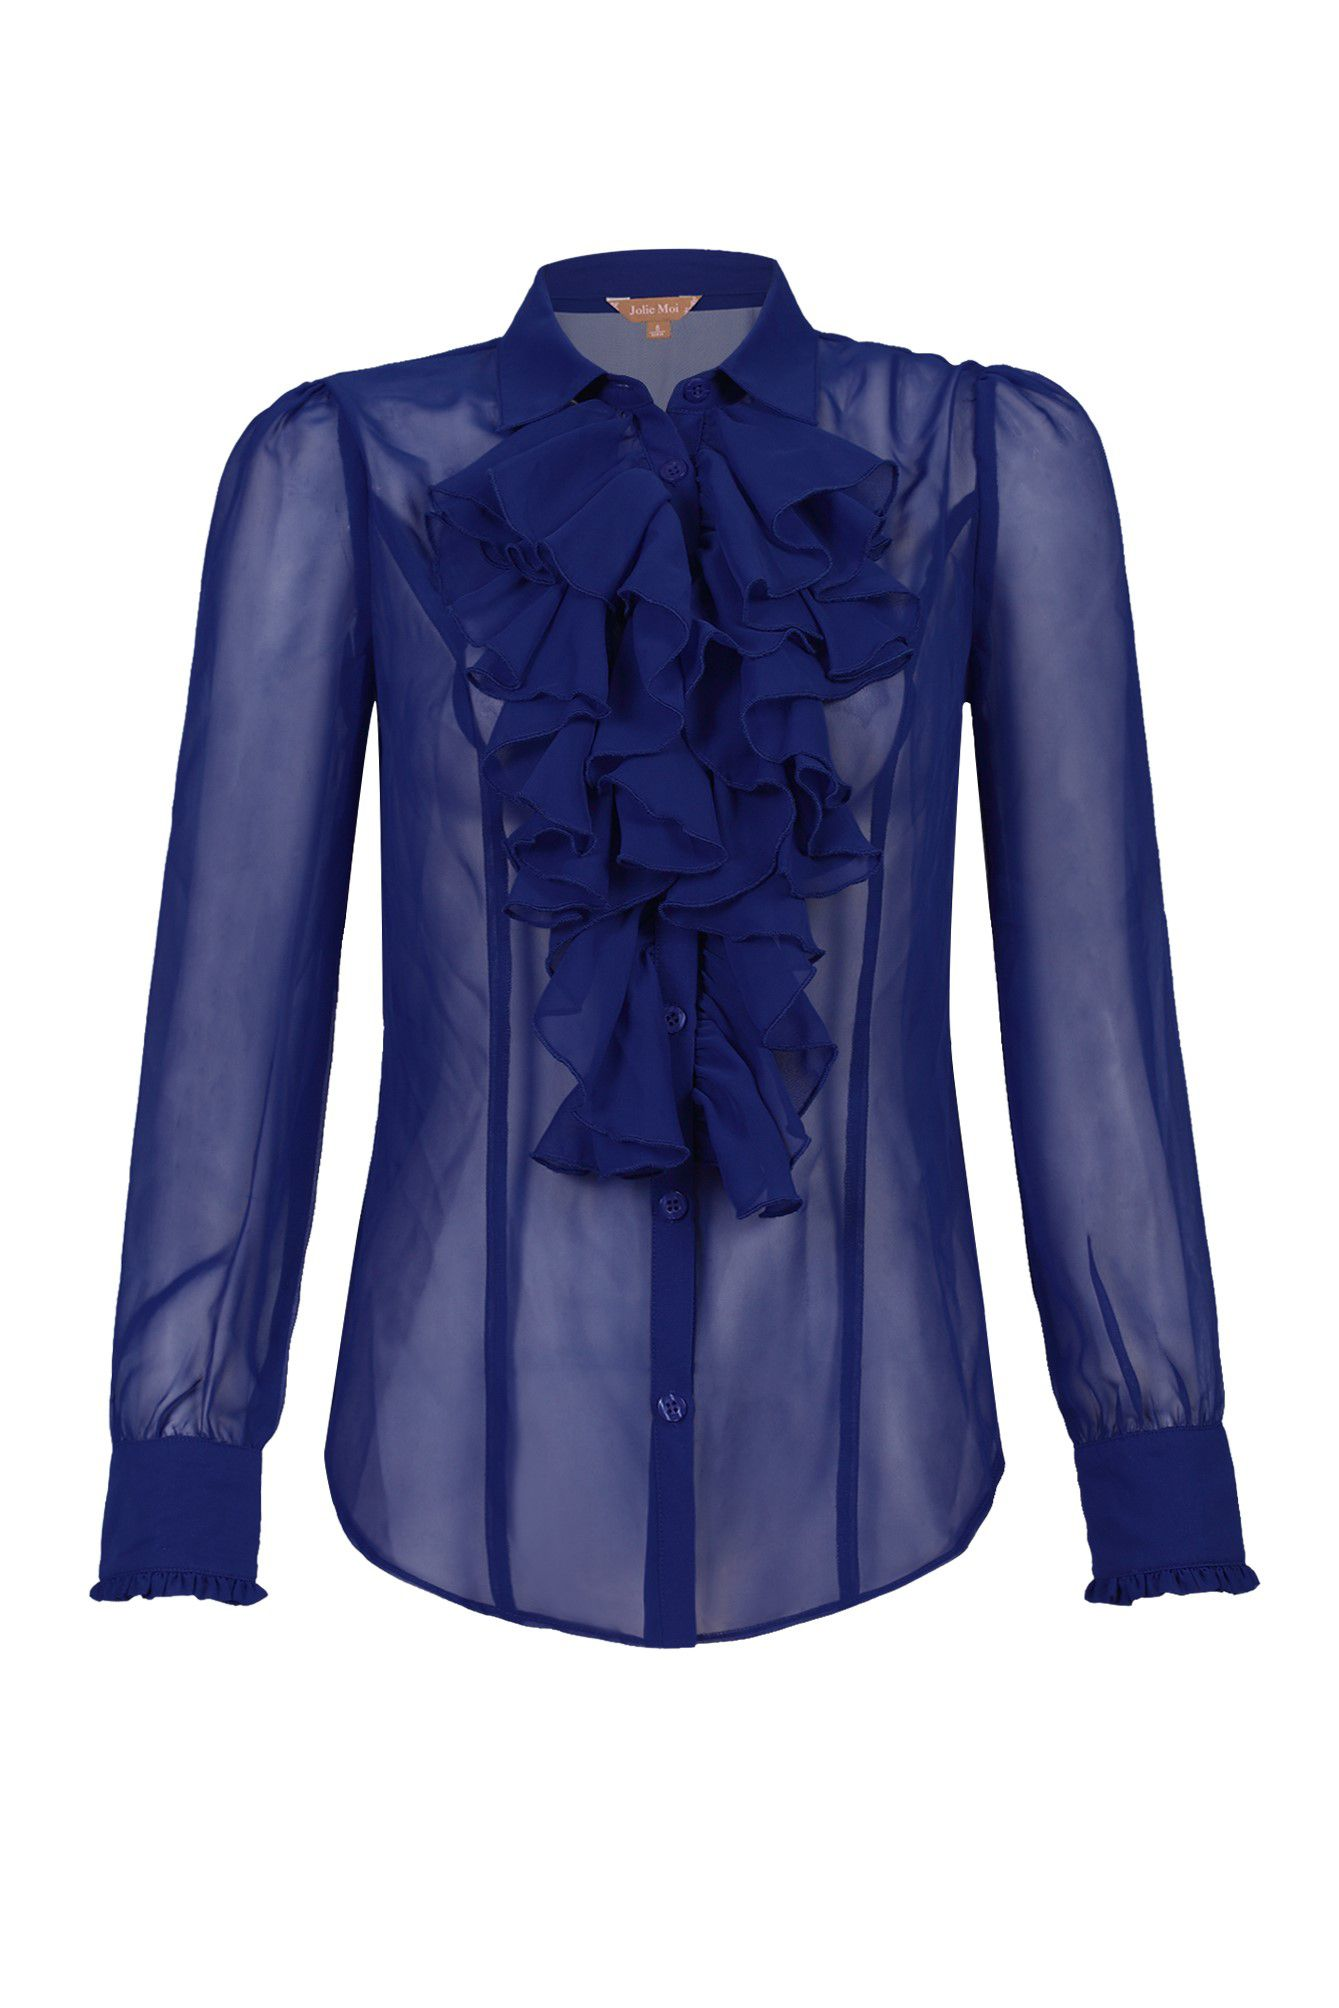 Jolie Moi Plain Chiffon Ruffle Shirt, Royal Blue